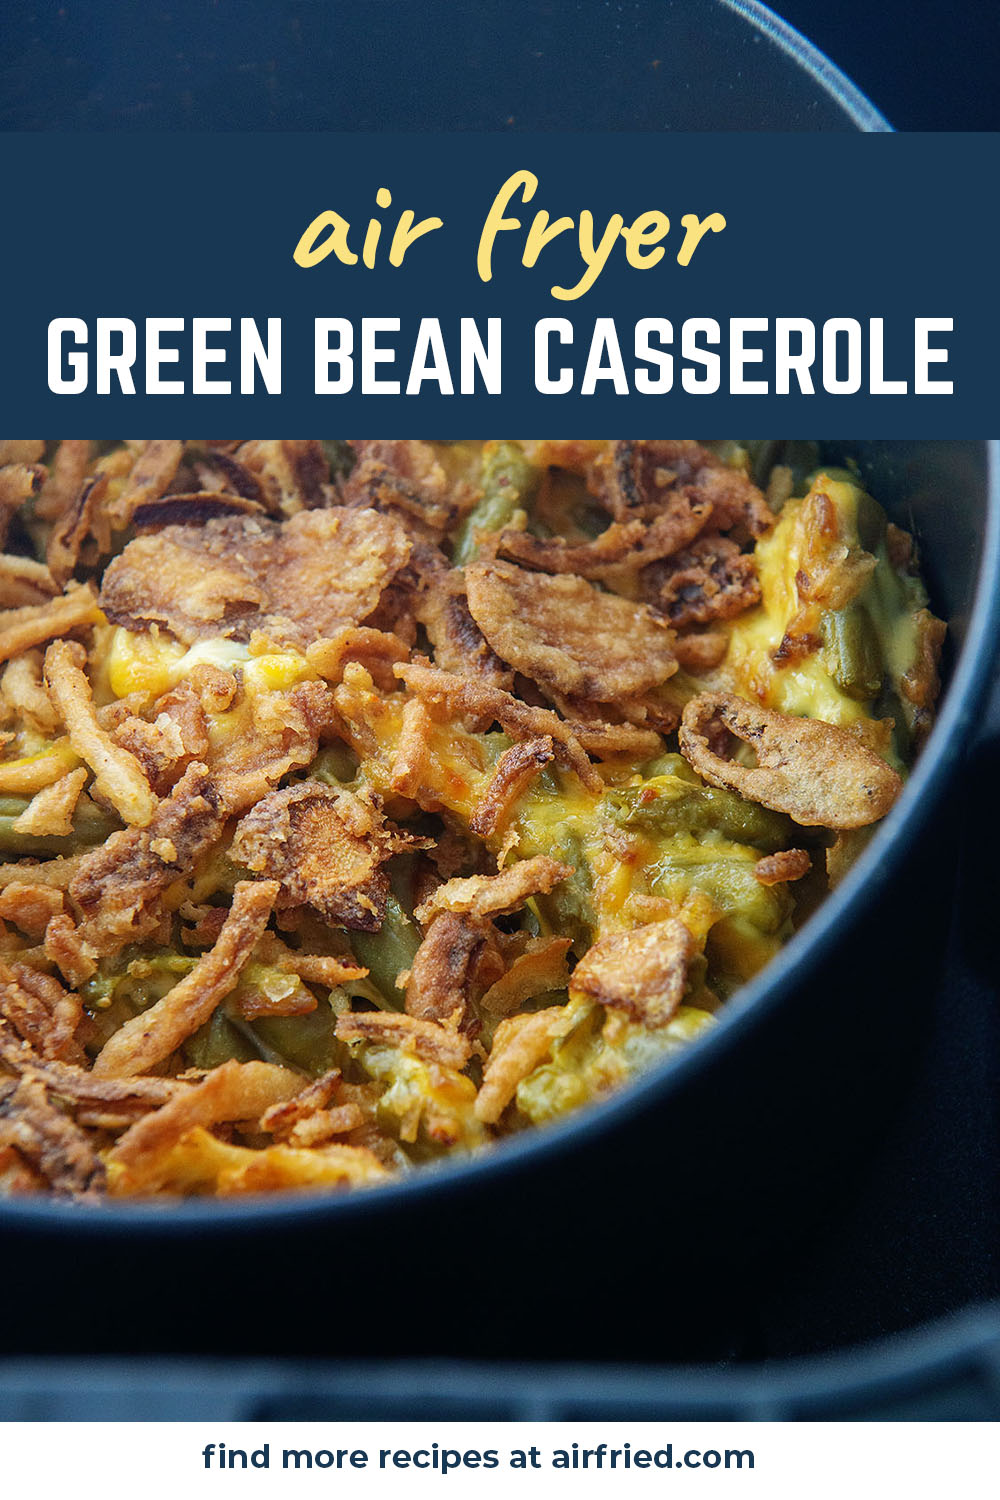 Crunchy green bean casserole  can be made in your air fryer in just a few minutes!